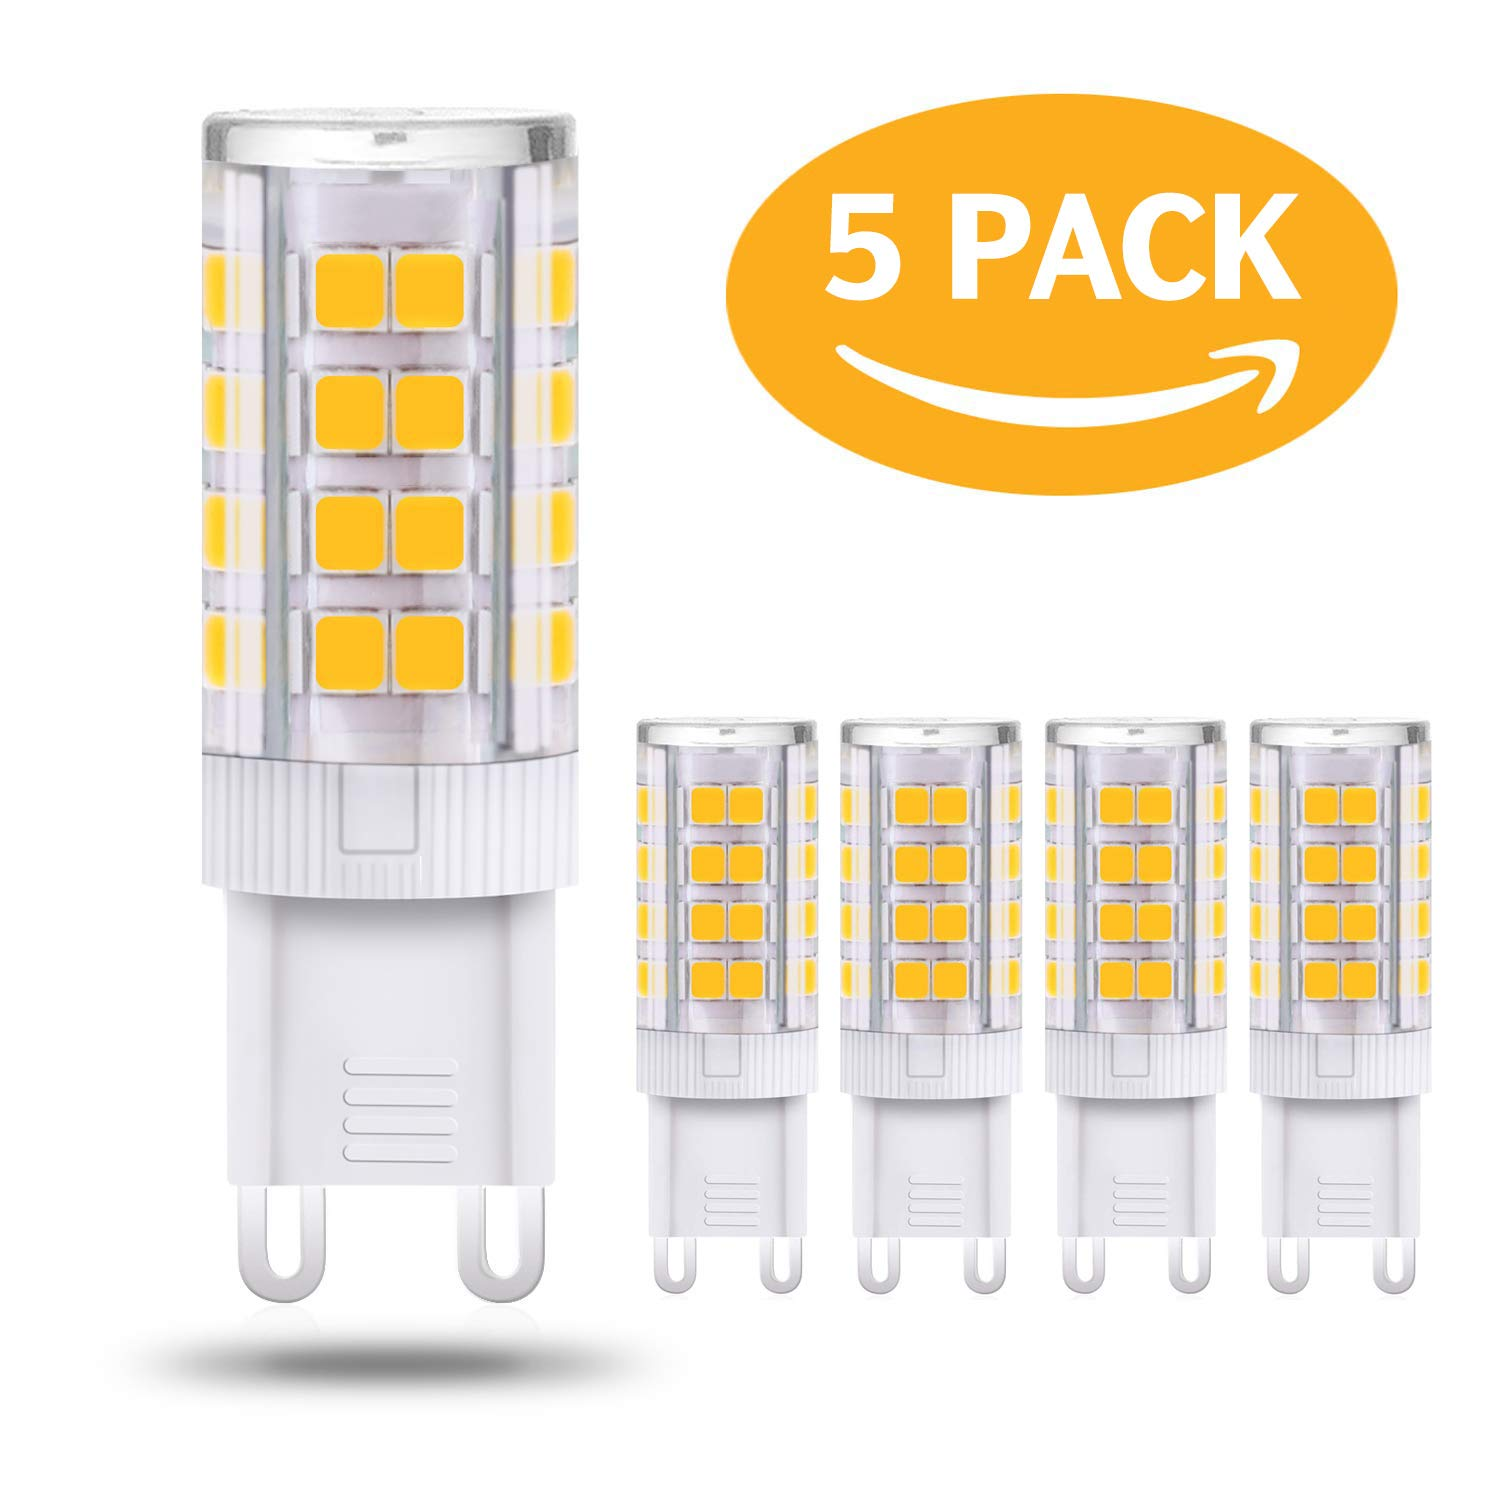 4W G9 LED Bulb Non-Dimmable Warm White 3000K Replace 28W 33W 40W Halogen G9 Bulbs No Strobe, Flicker Free (5Pack)